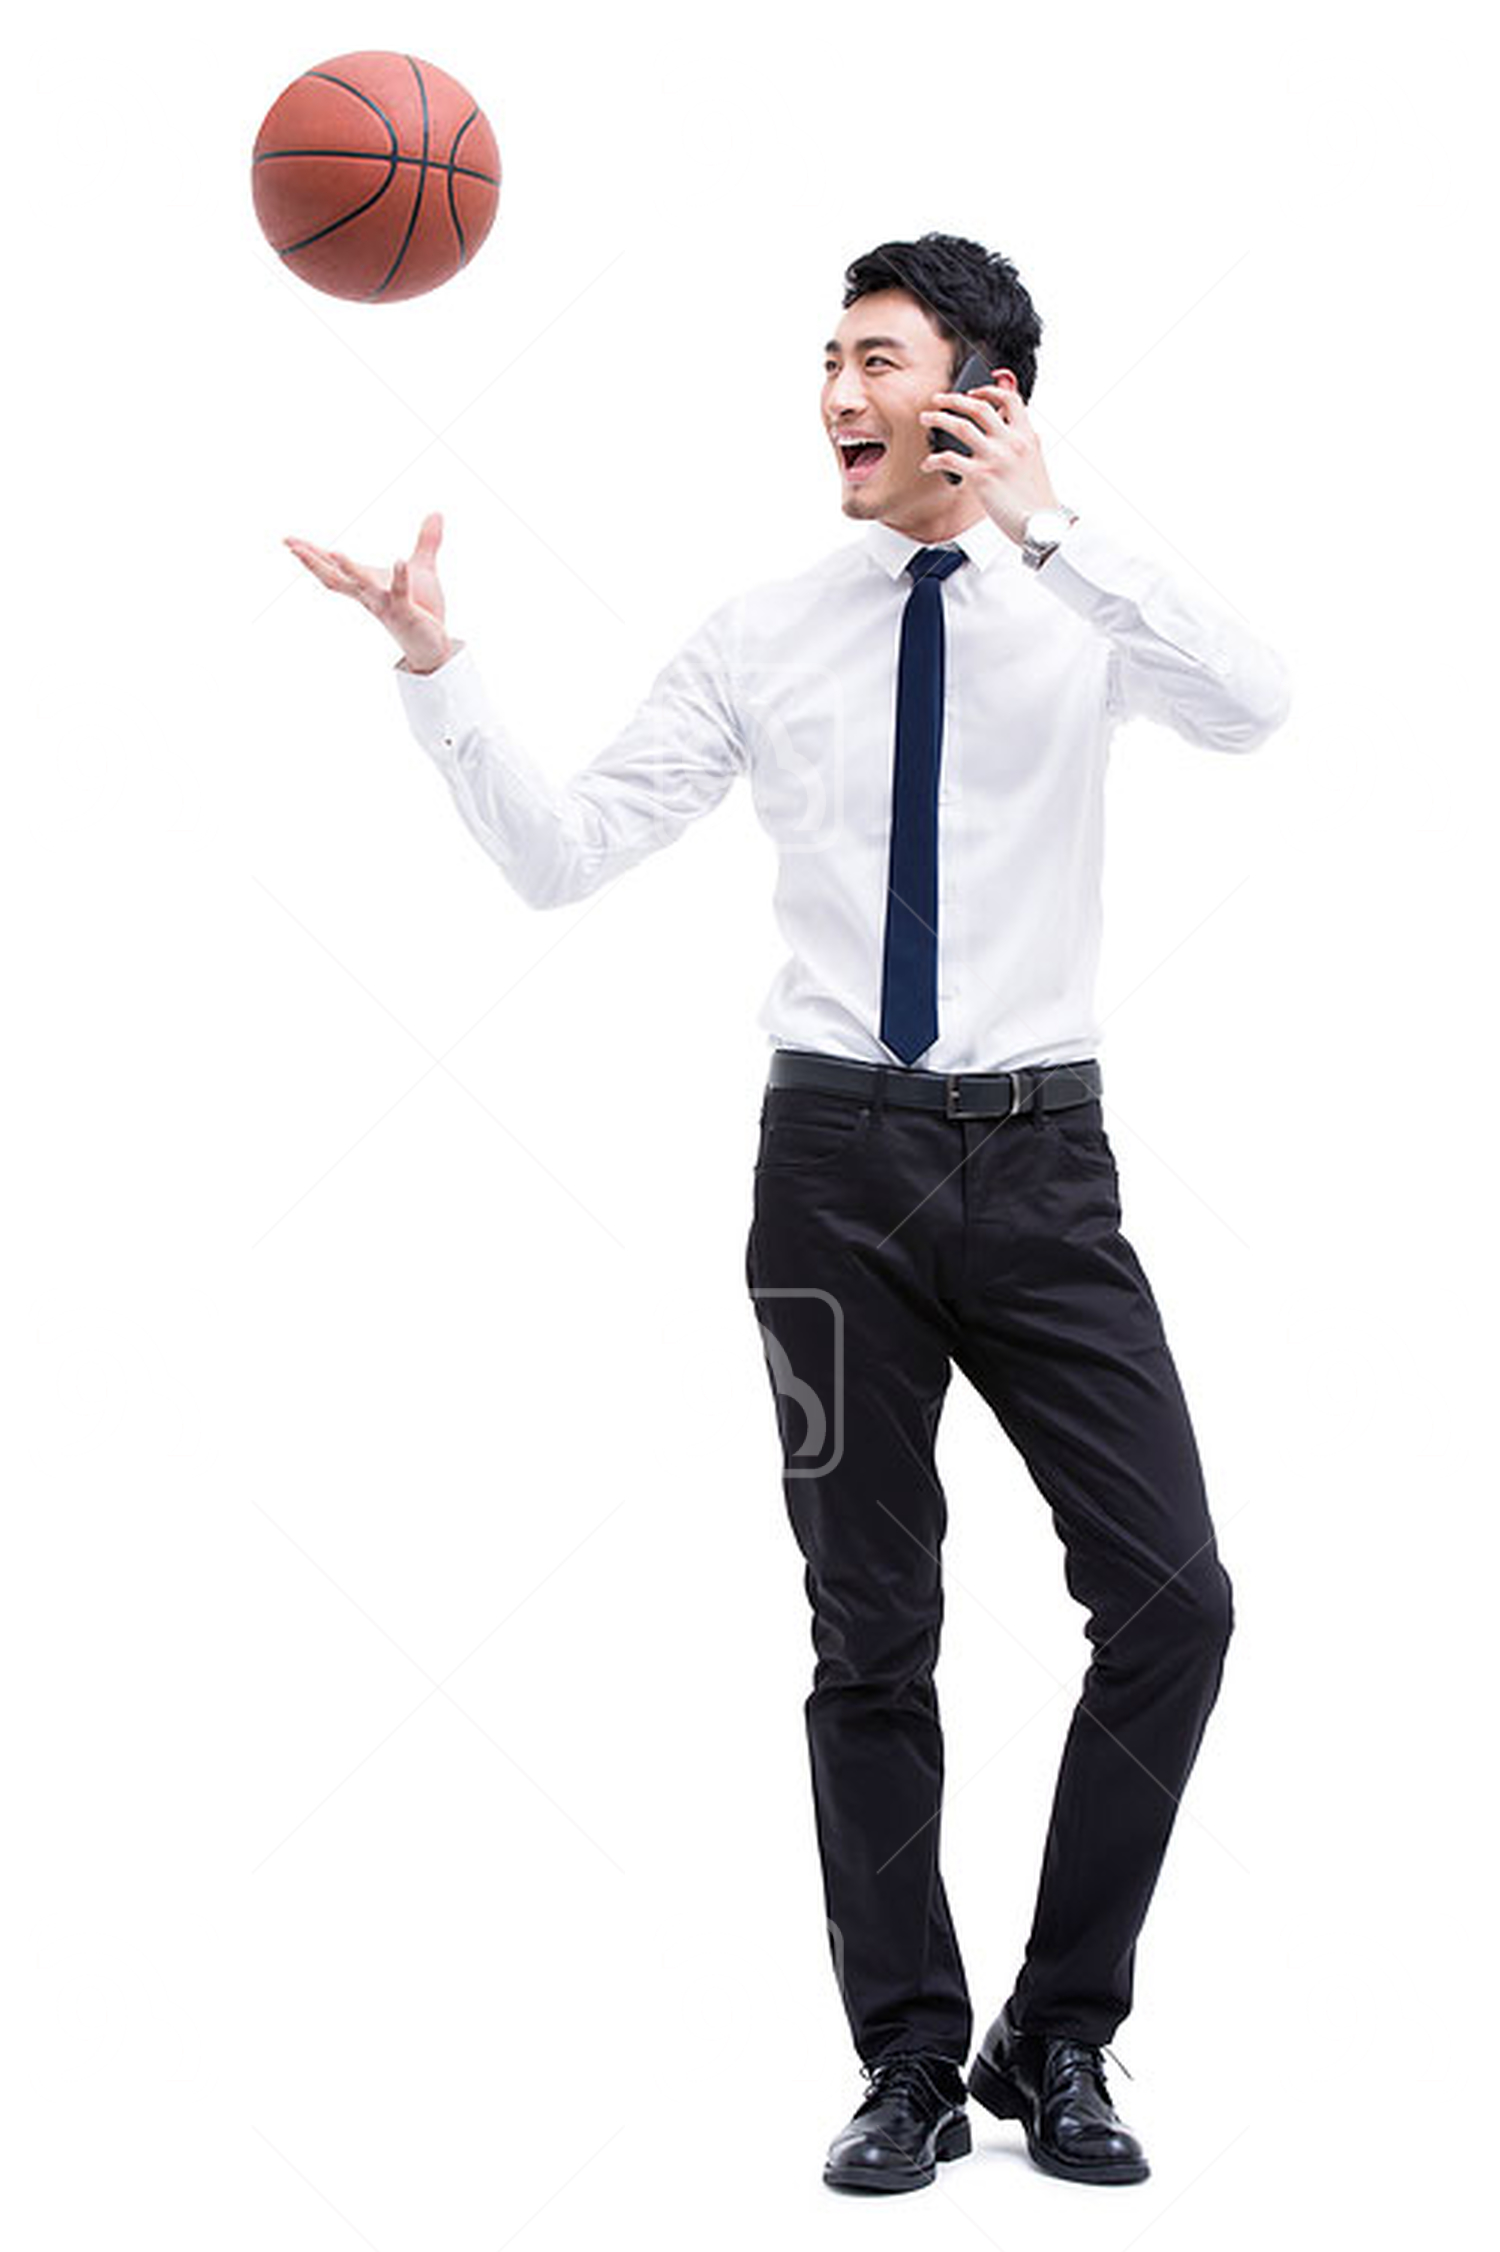 Young Chinese businessman on the phone with a tossing basketball in air